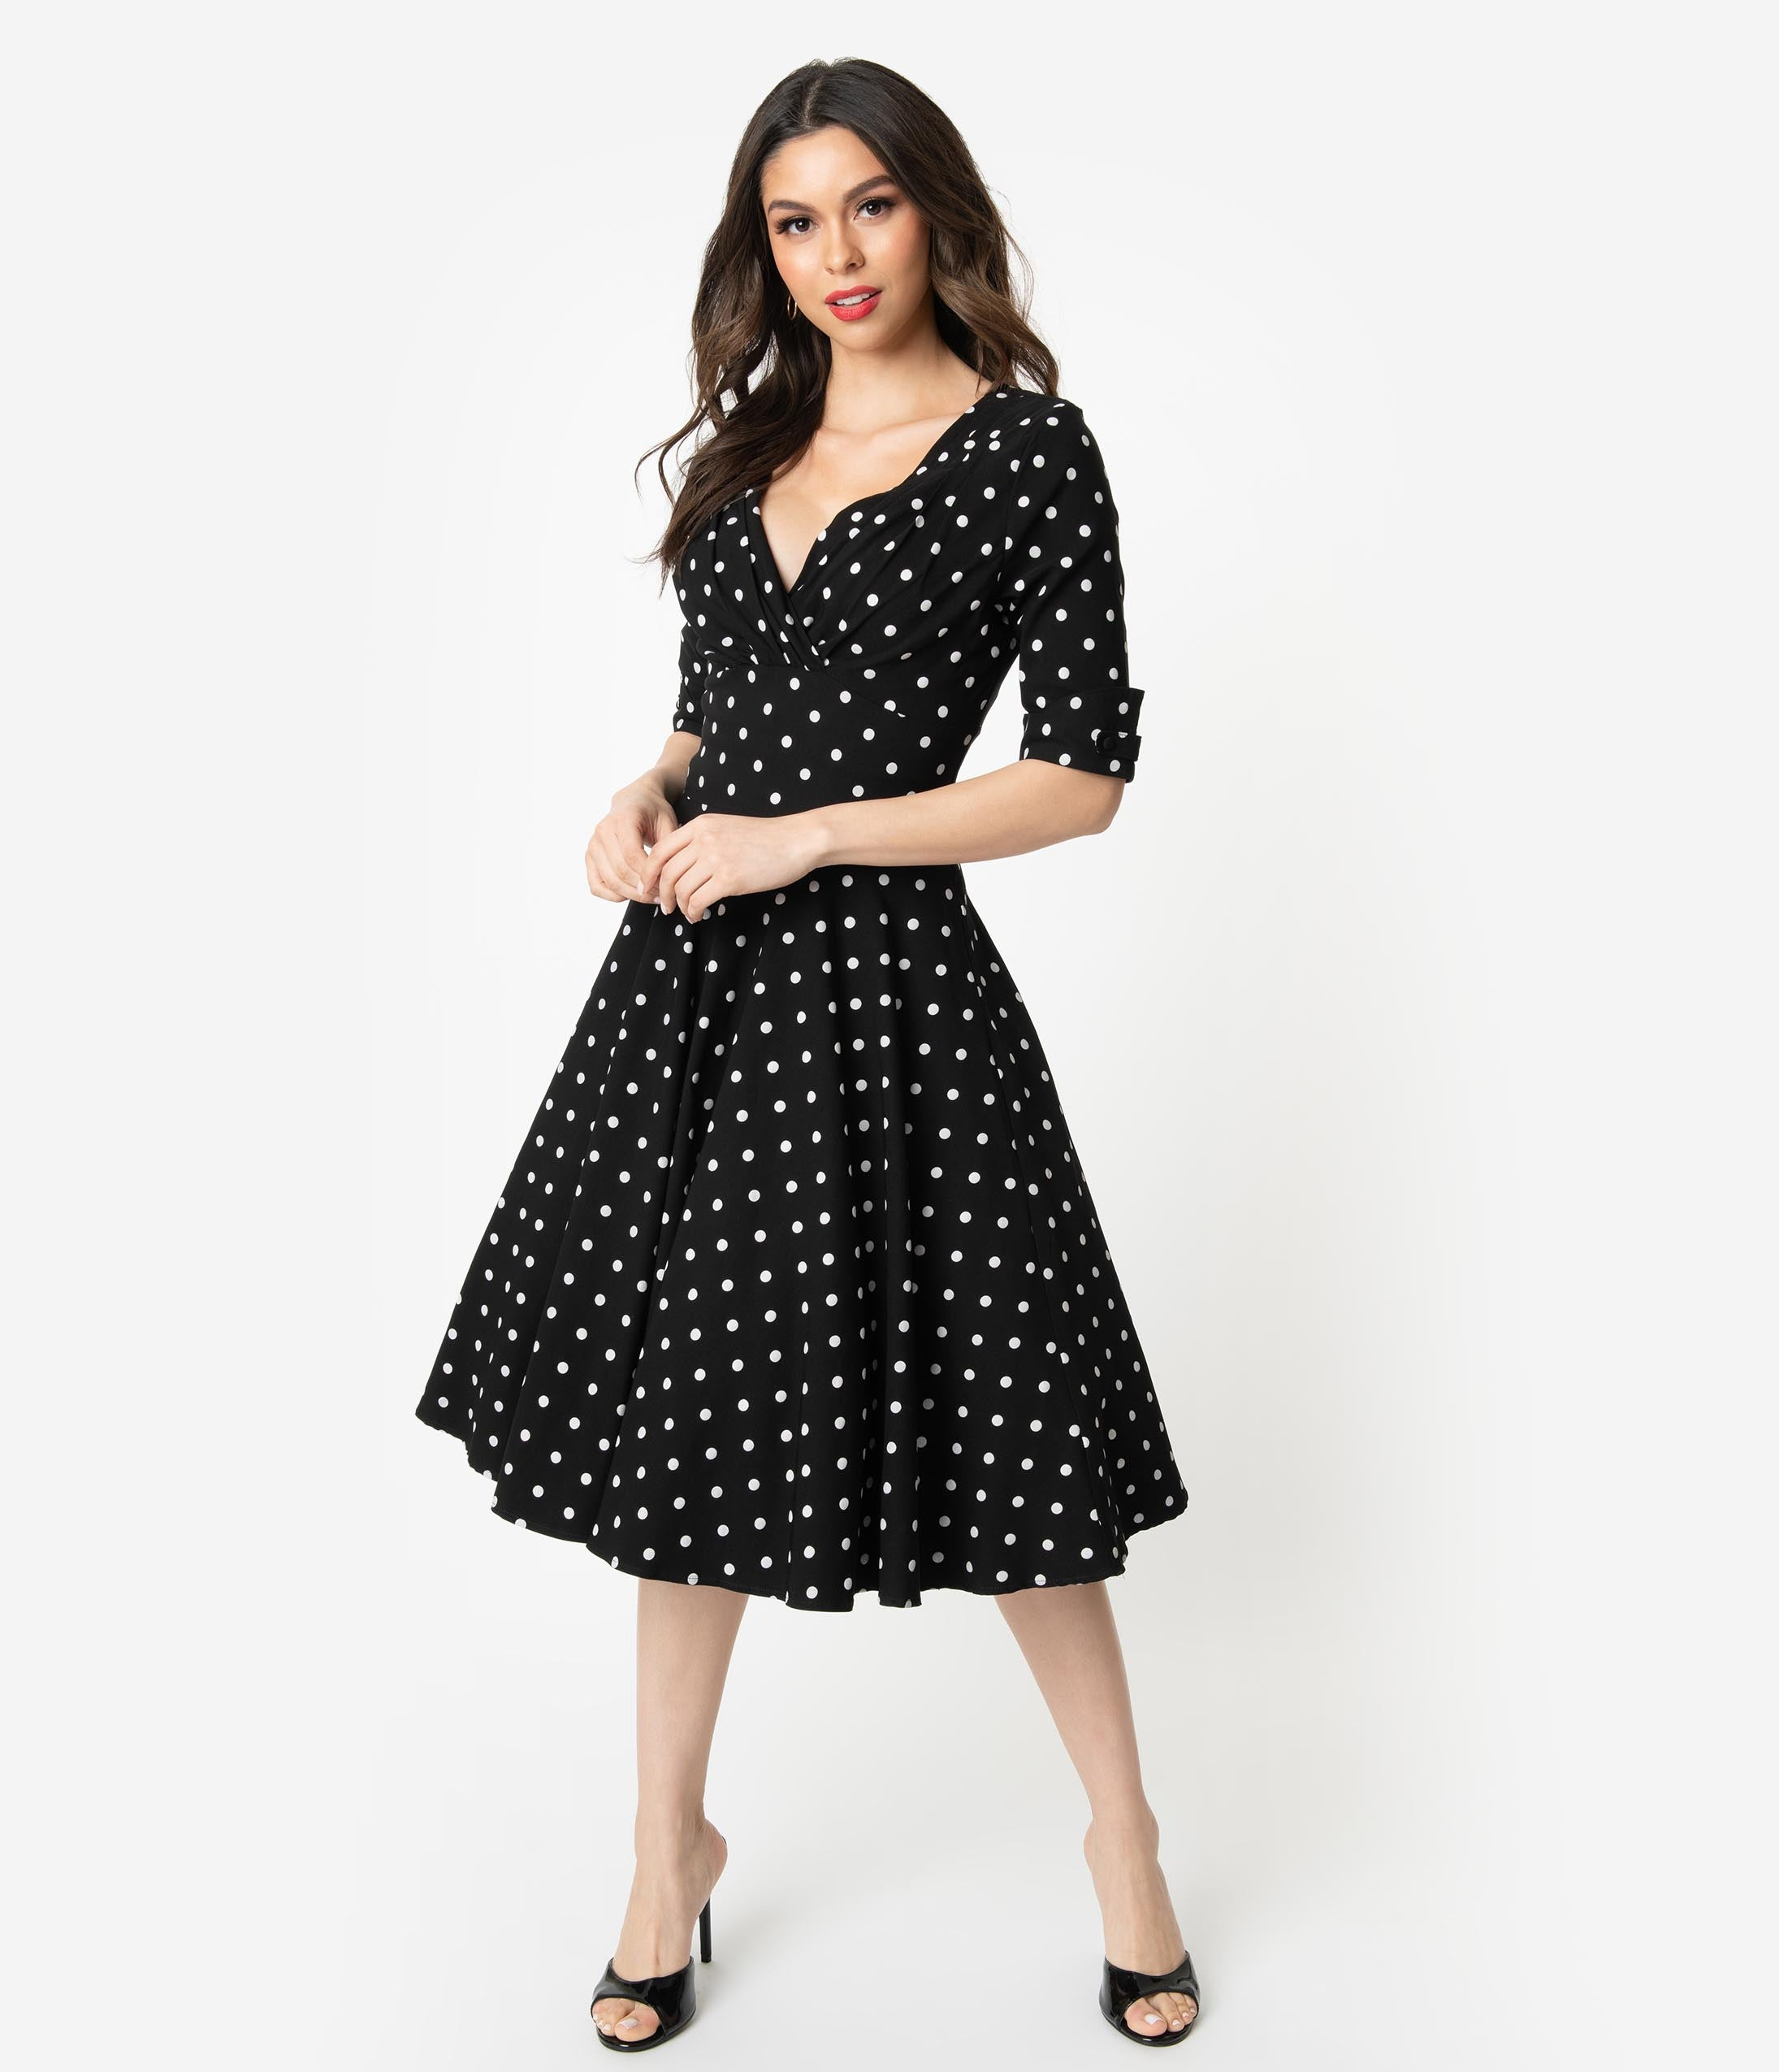 50s Costumes | 50s Halloween Costumes Unique Vintage 1950S Black  White Polka Dot Delores Swing Dress With Sleeves $92.00 AT vintagedancer.com